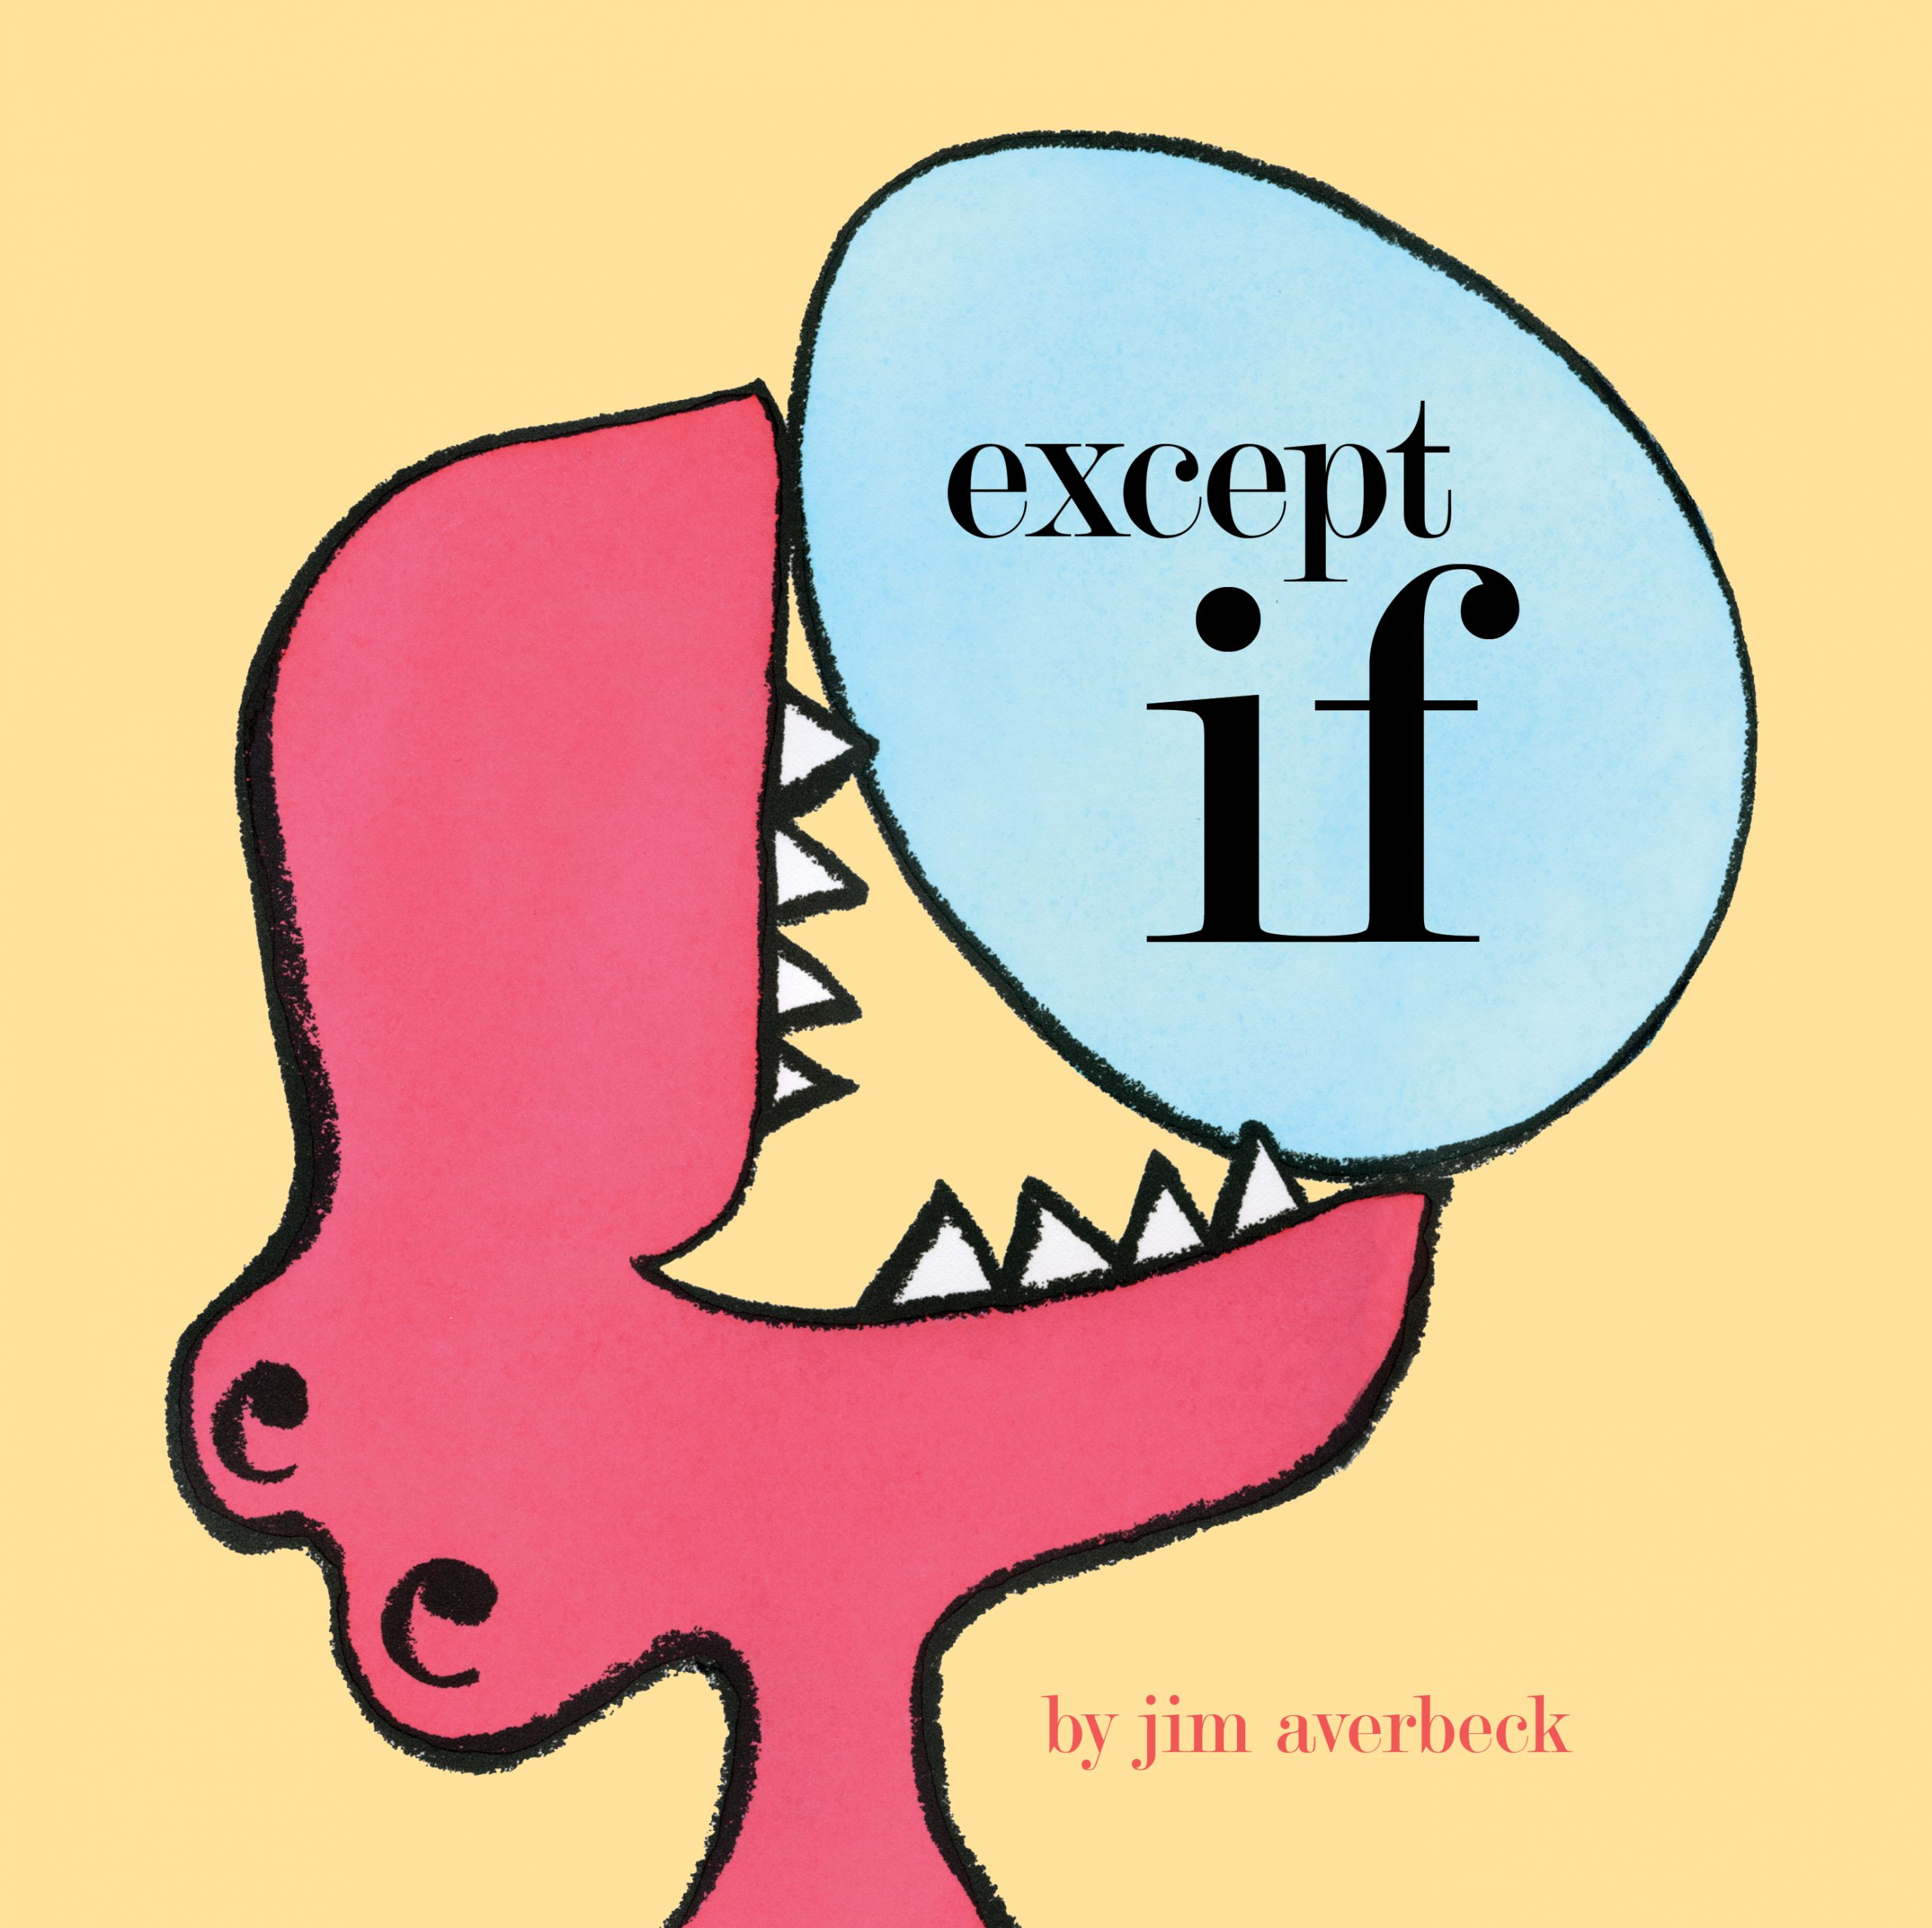 The cover image of except if, which shows a pink dragon on a yellow background, with a blue egg perched precariously against the dinosaur's sharp teeth.